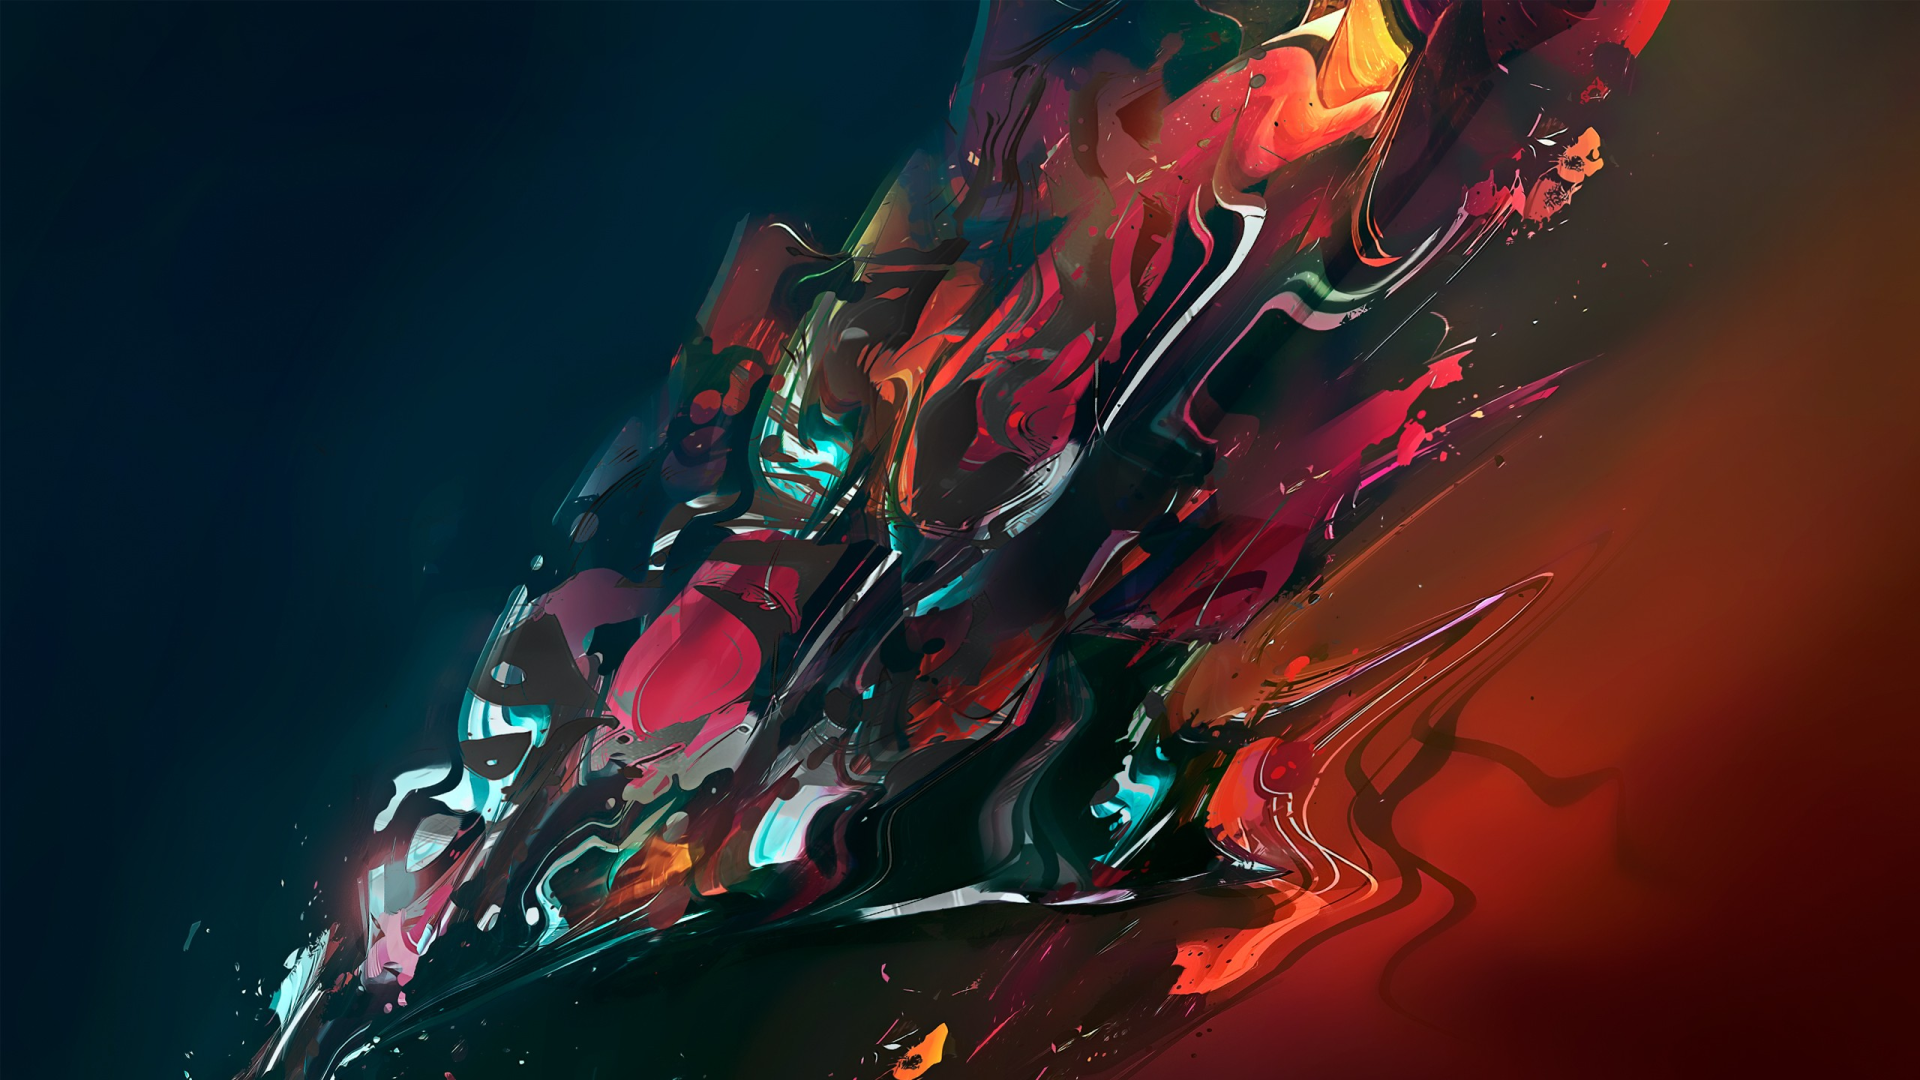 abstract color cgi painting art wallpaper | 1920x1080 | 51885